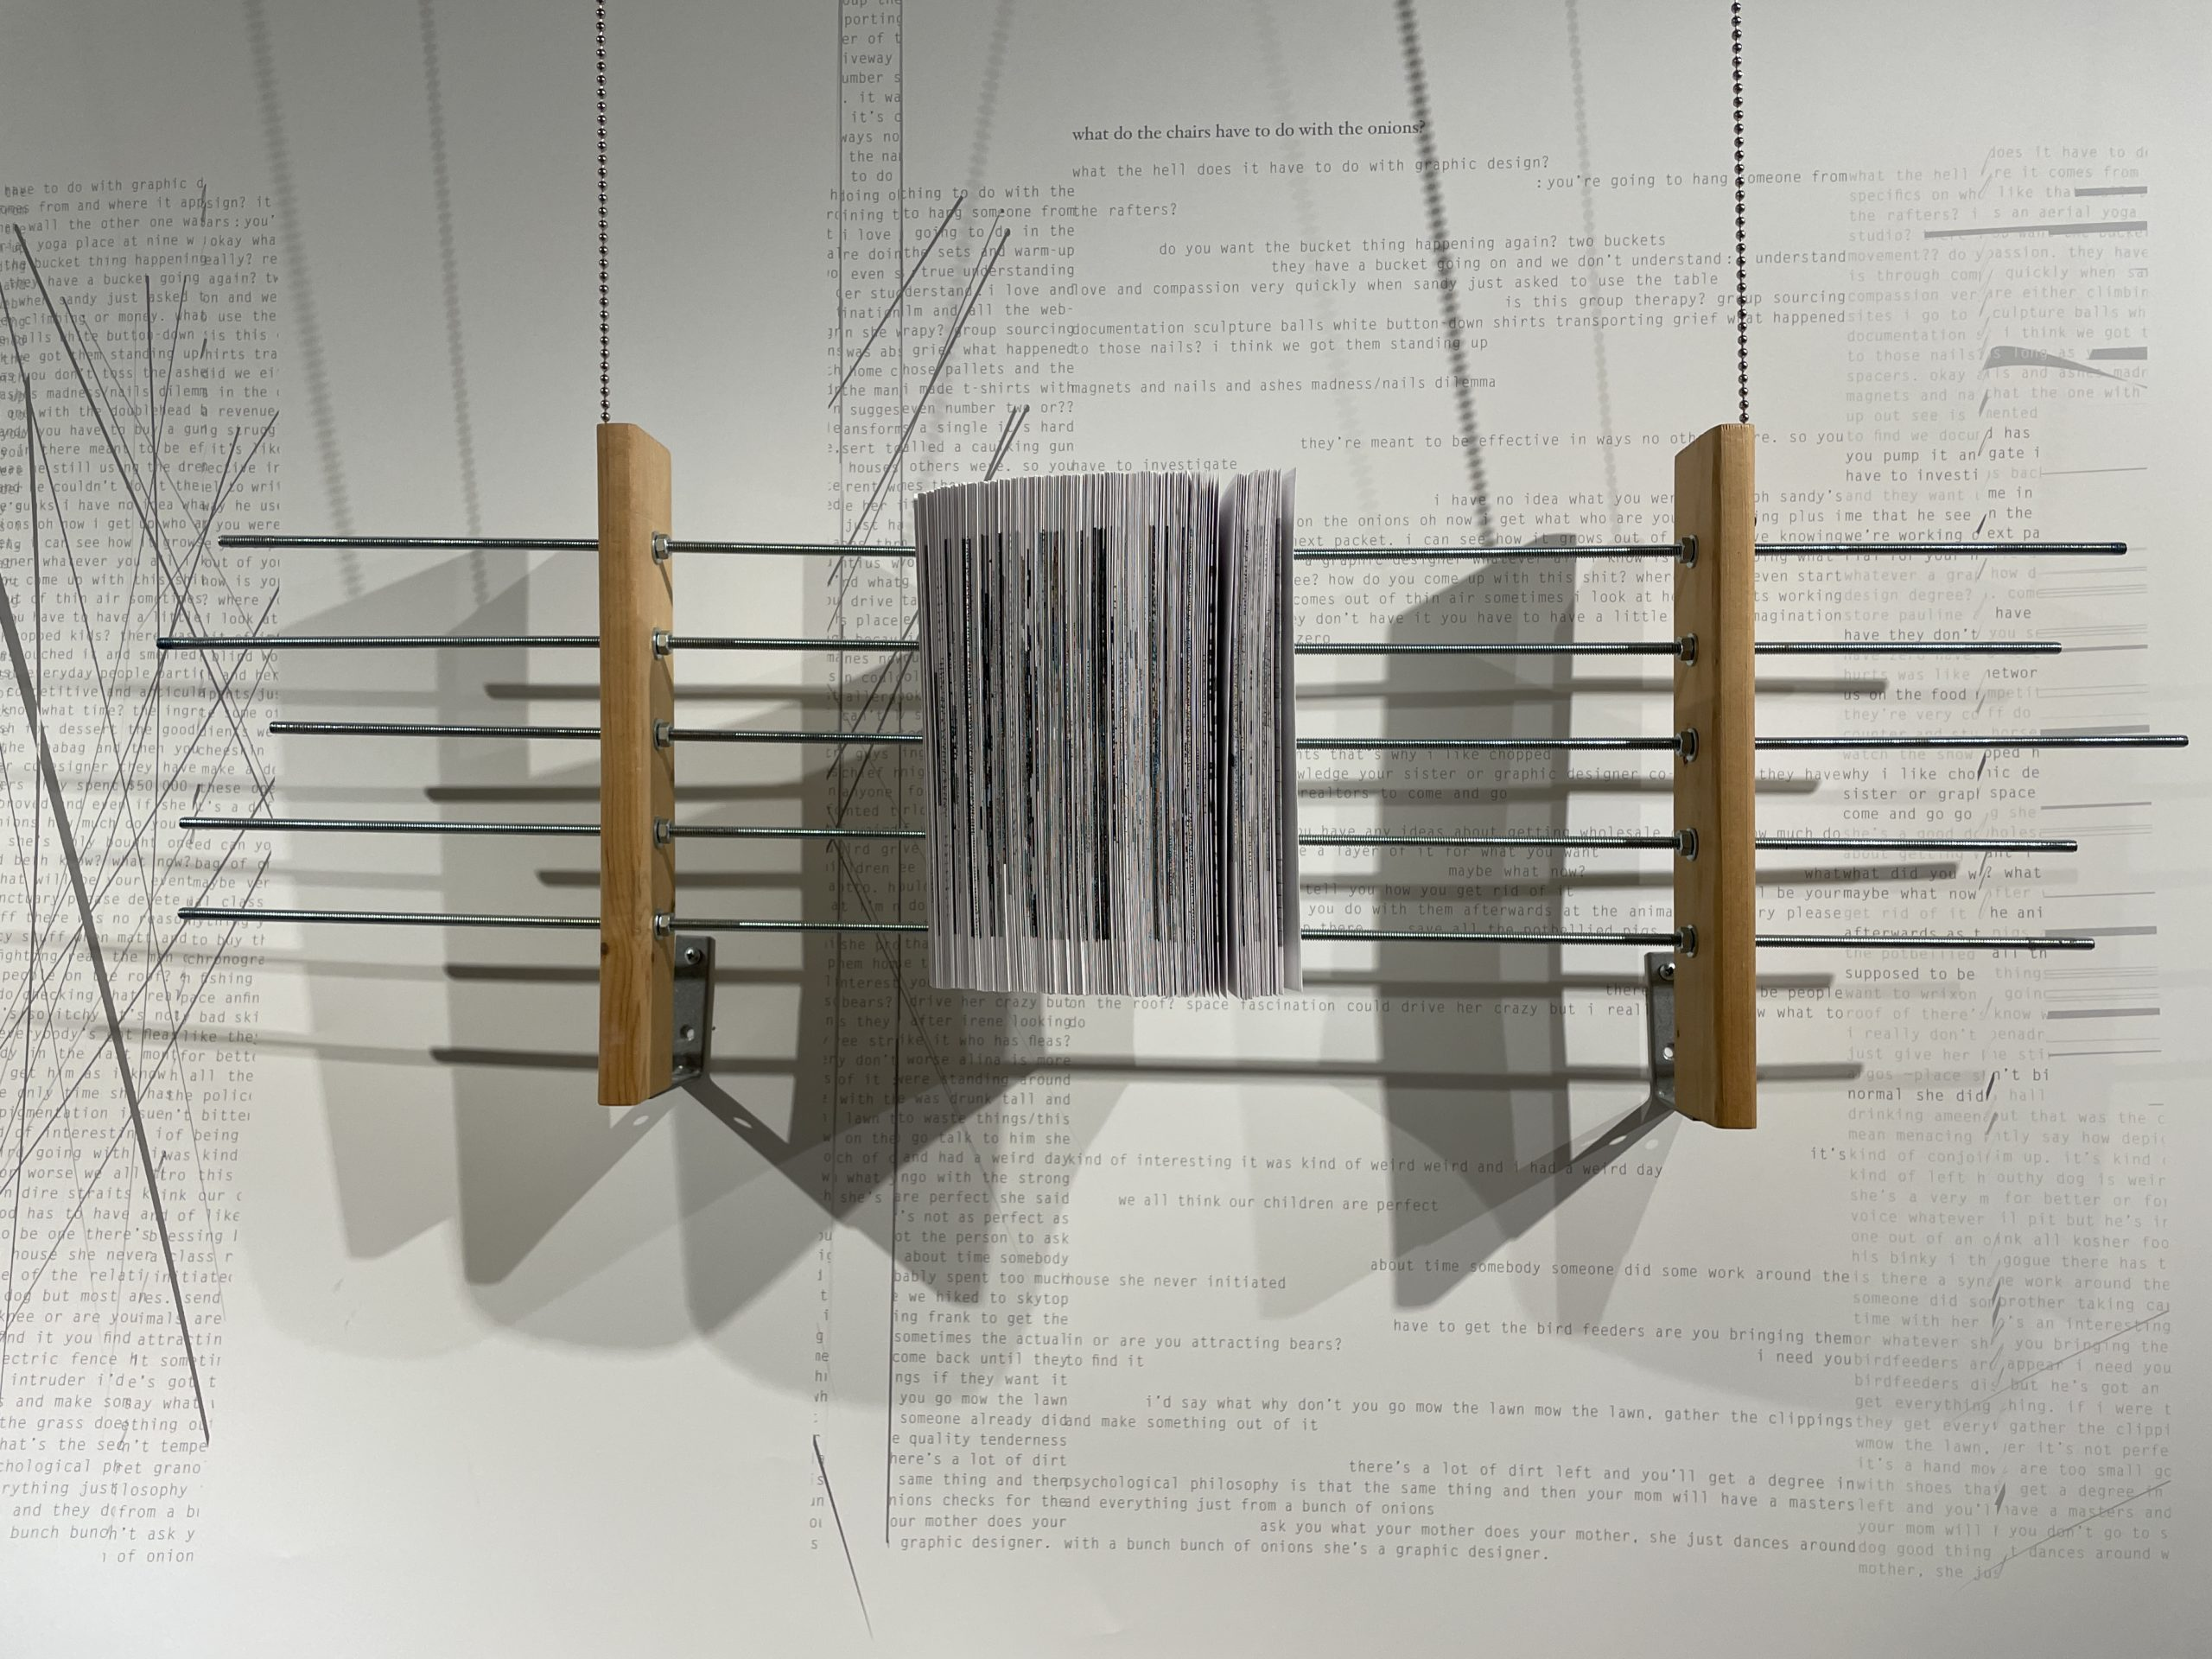 book pierced by metal rods hanging in front of a wall